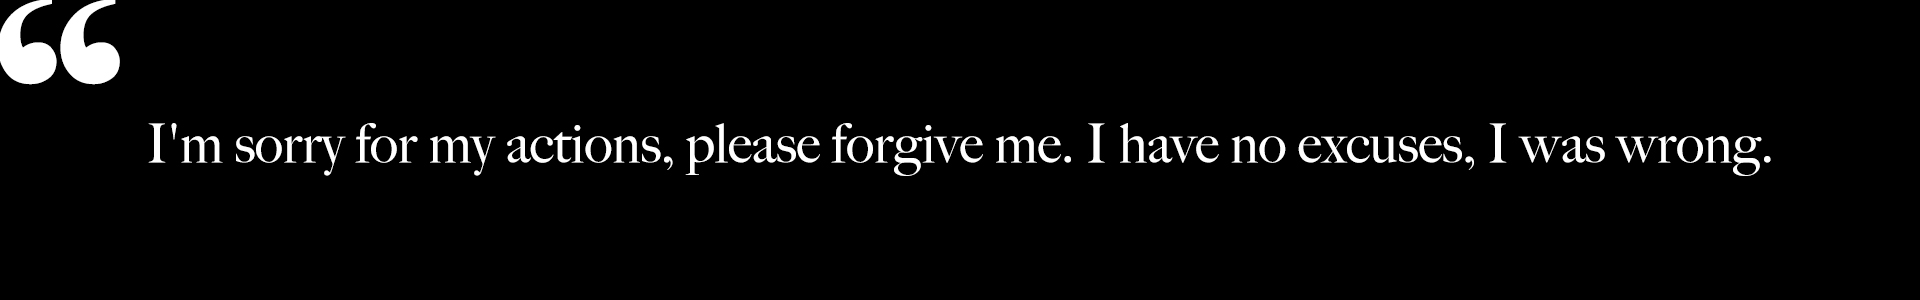 forgiveness quote.jpg